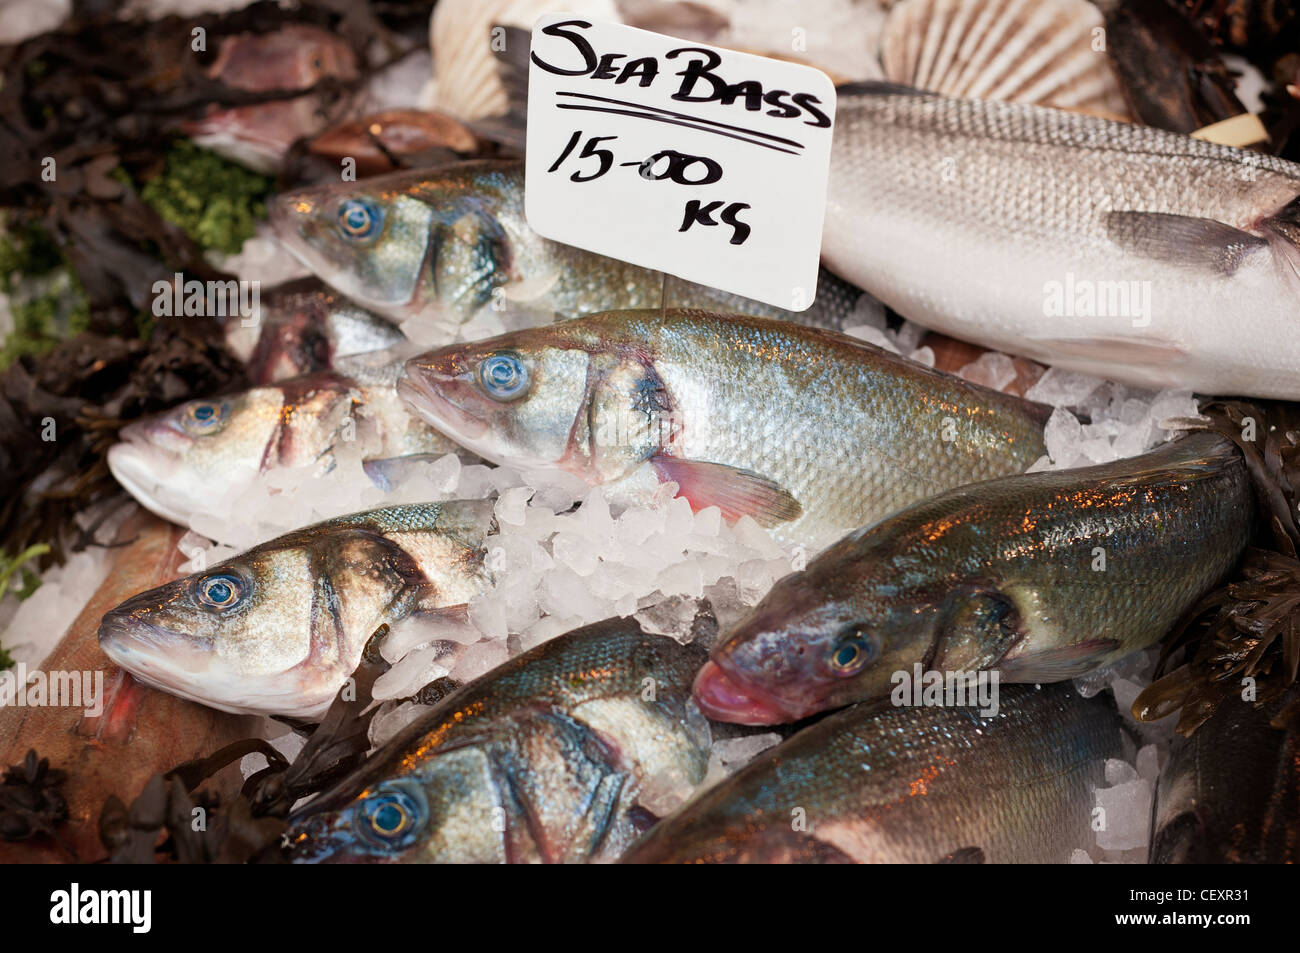 Fresh Sea Bass for sale on a fishmonger's market stall at Borough Market, Southwark South East London UK - Stock Image